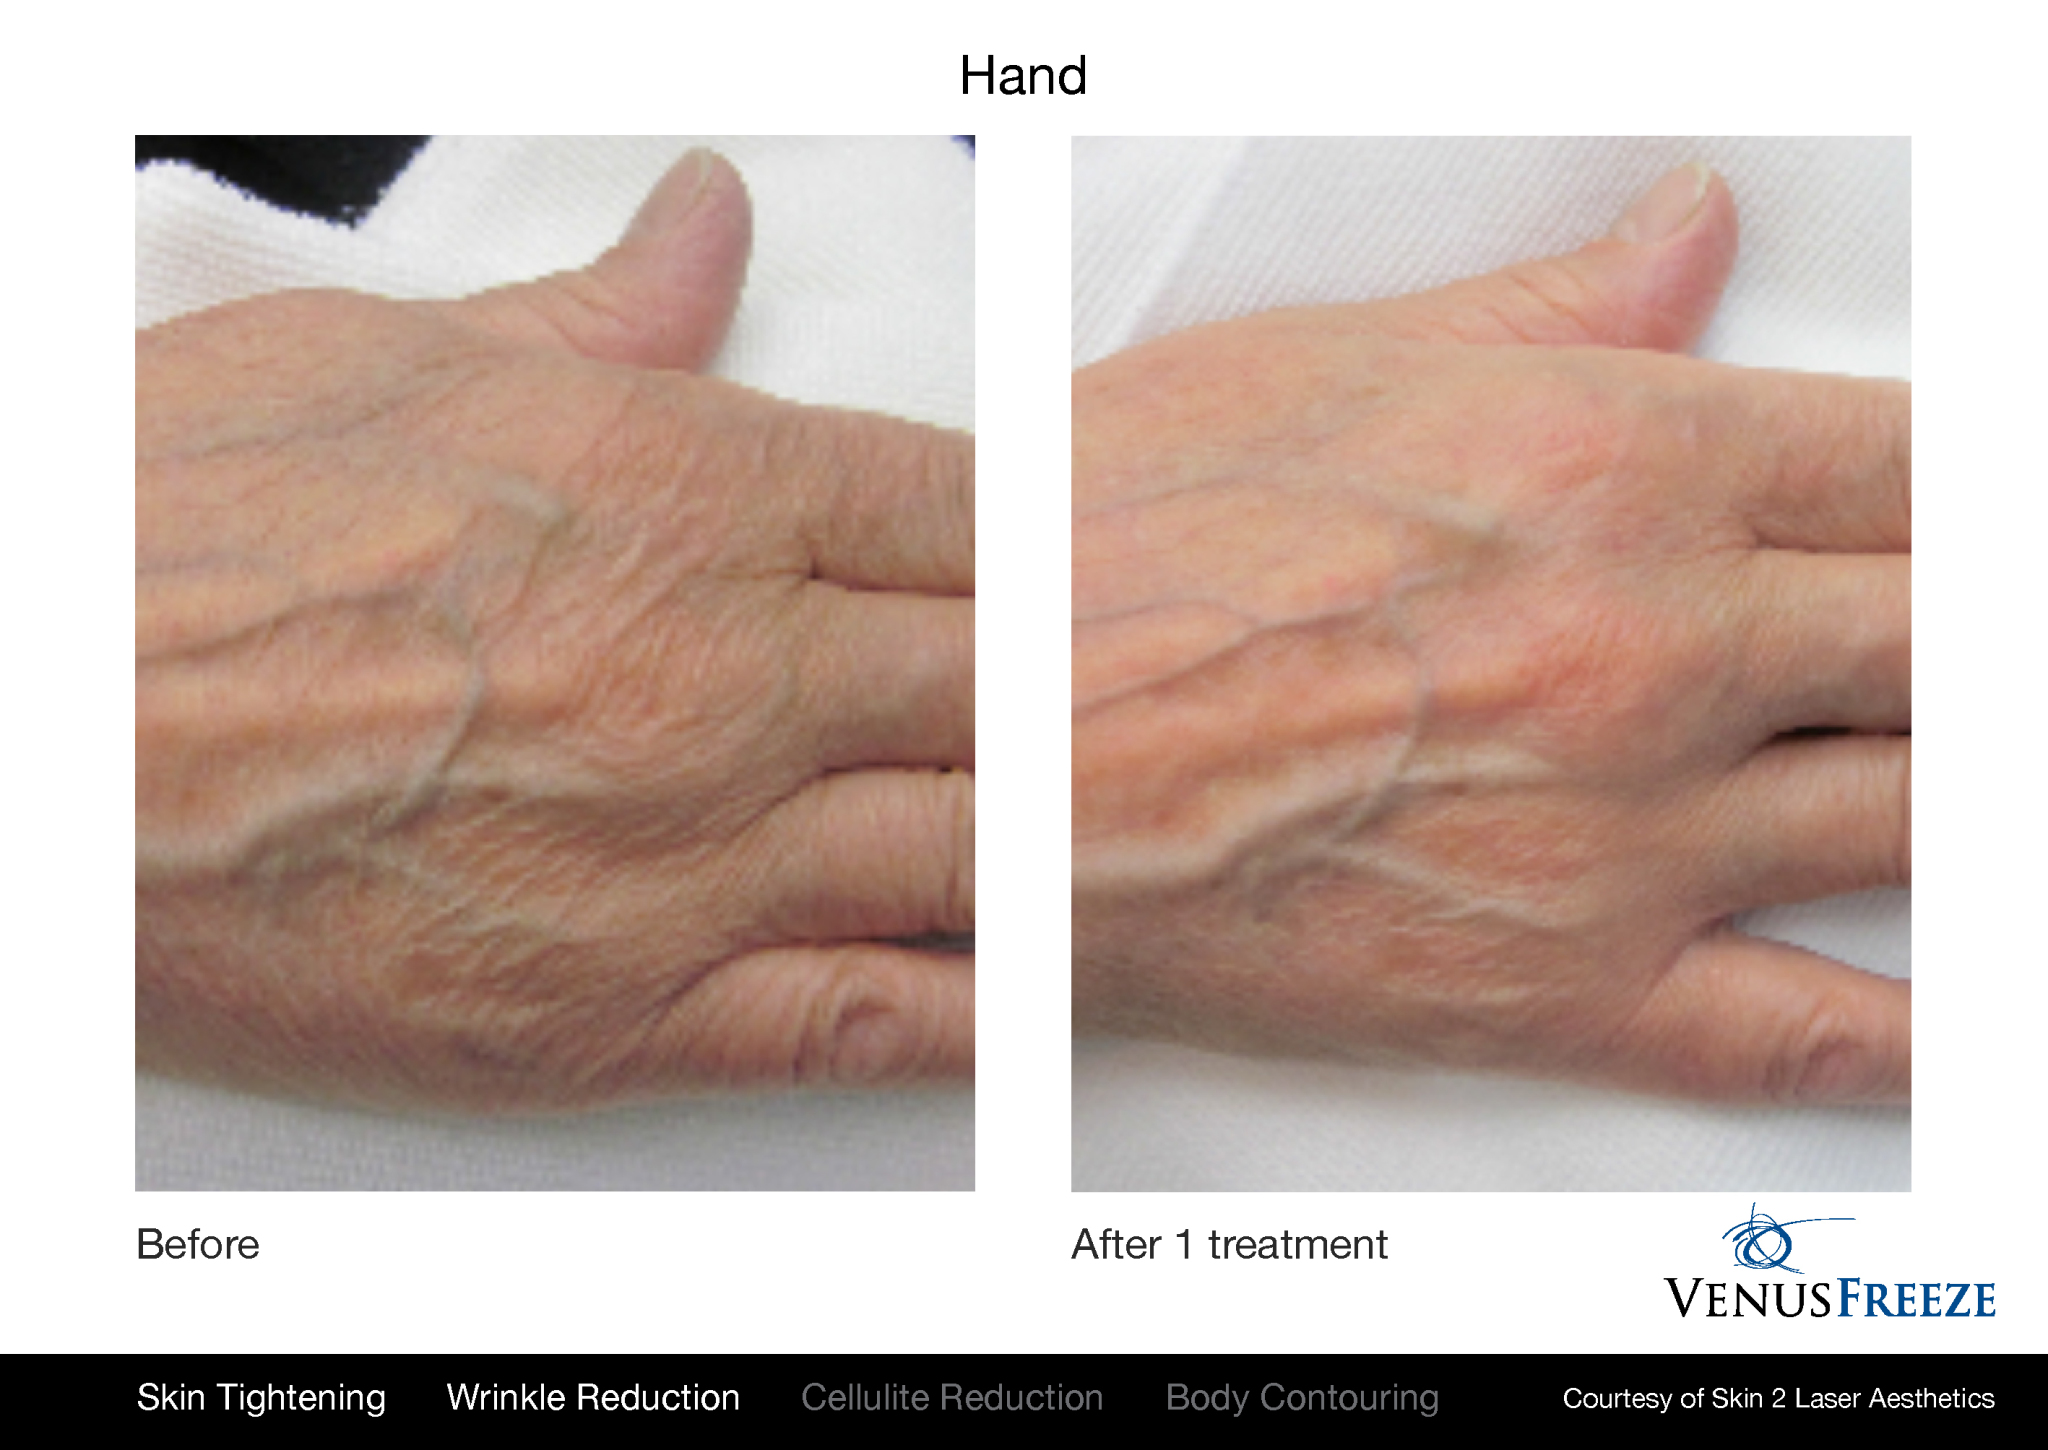 Prevent Aging Hands with Venus Freeze